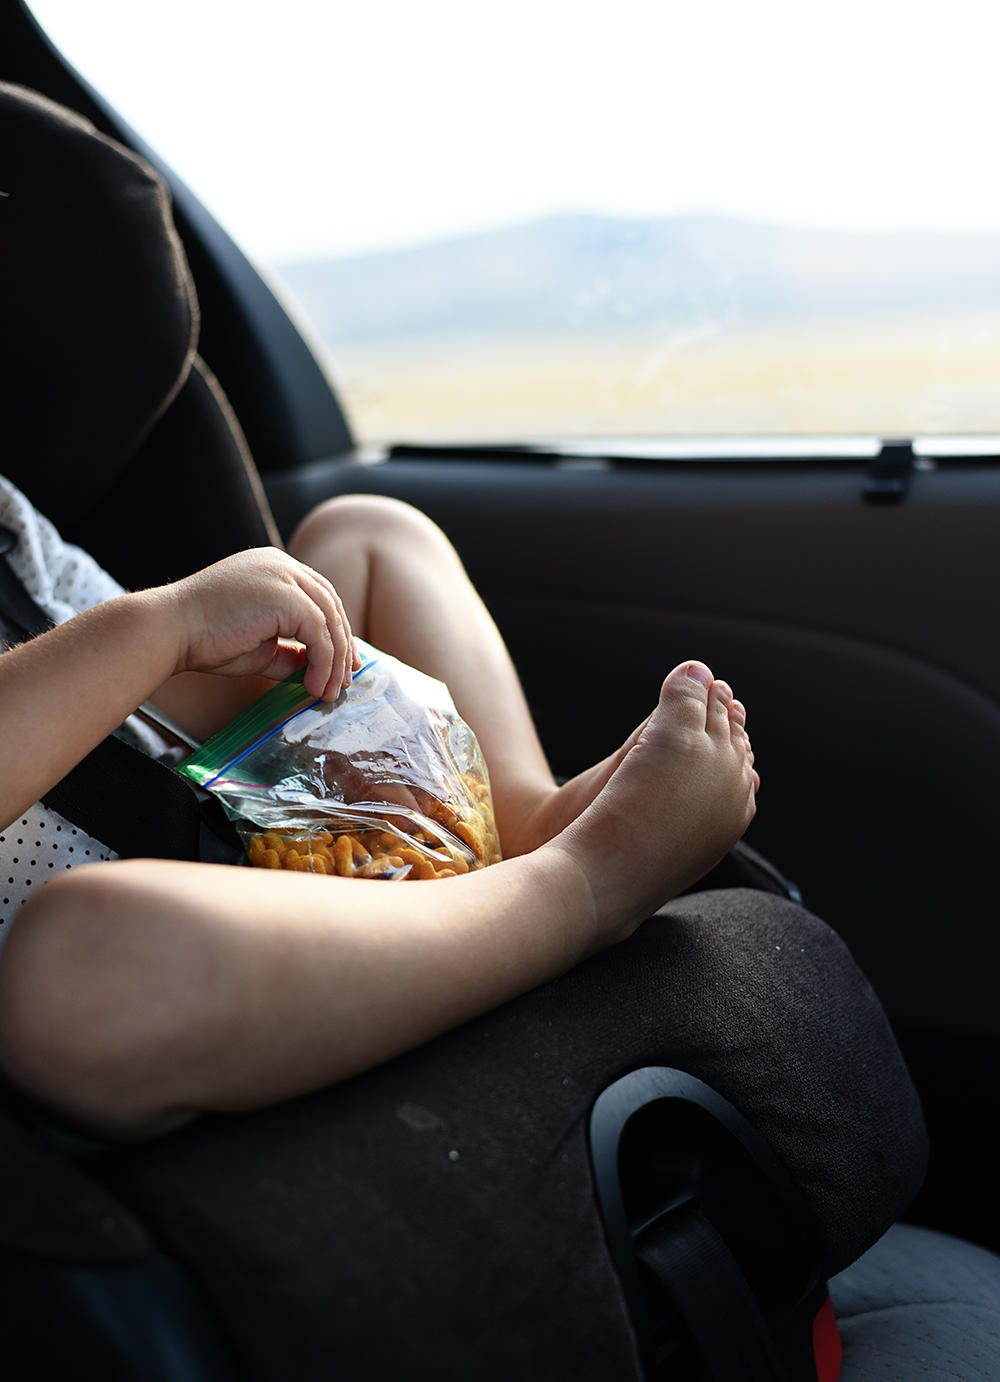 Don't forget the snacks on a screen-free road trip with kids